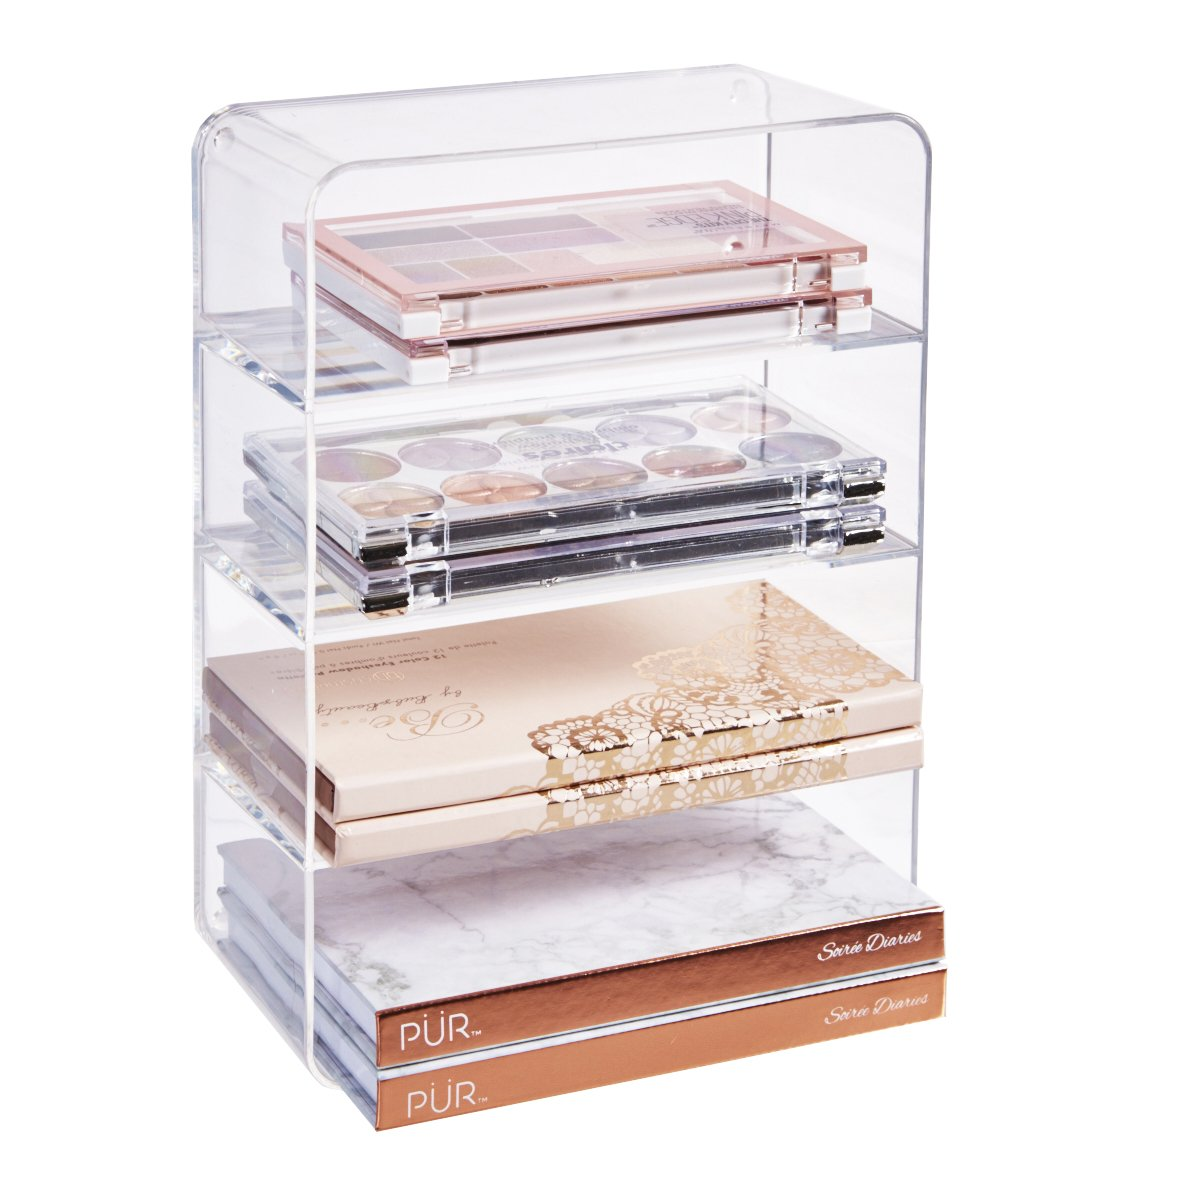 Sto Ri Clear Plastic Vanity, Craft, And Plush Toy Organizer | 4 Compartments by Sto Ri